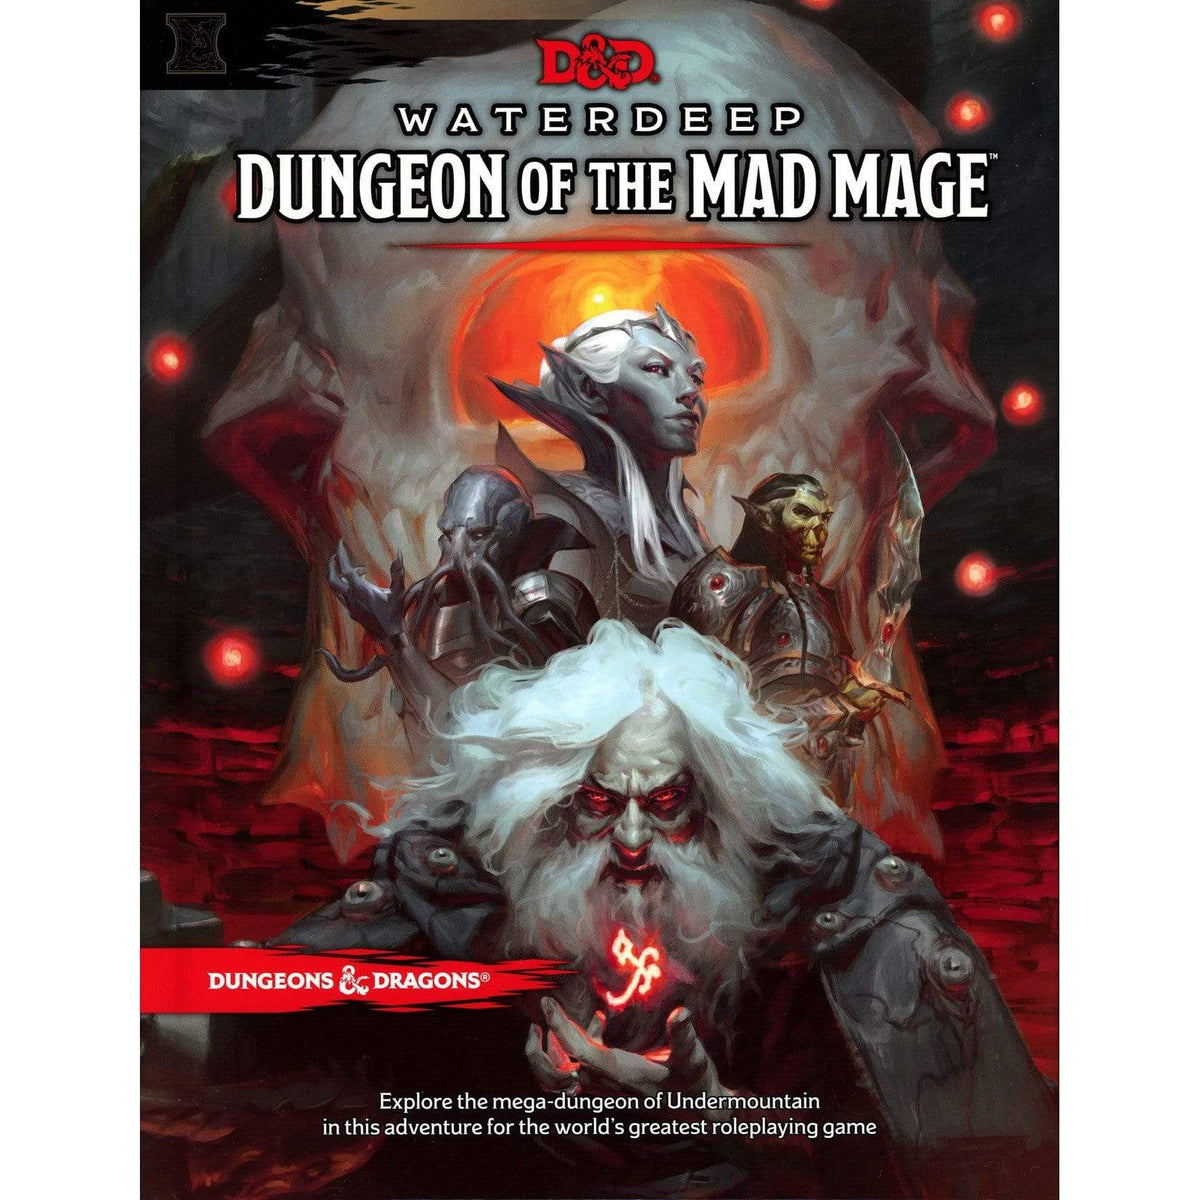 D&D: Waterdeep Dungeon of the Mad Mage Wizards of the Coast Board Games